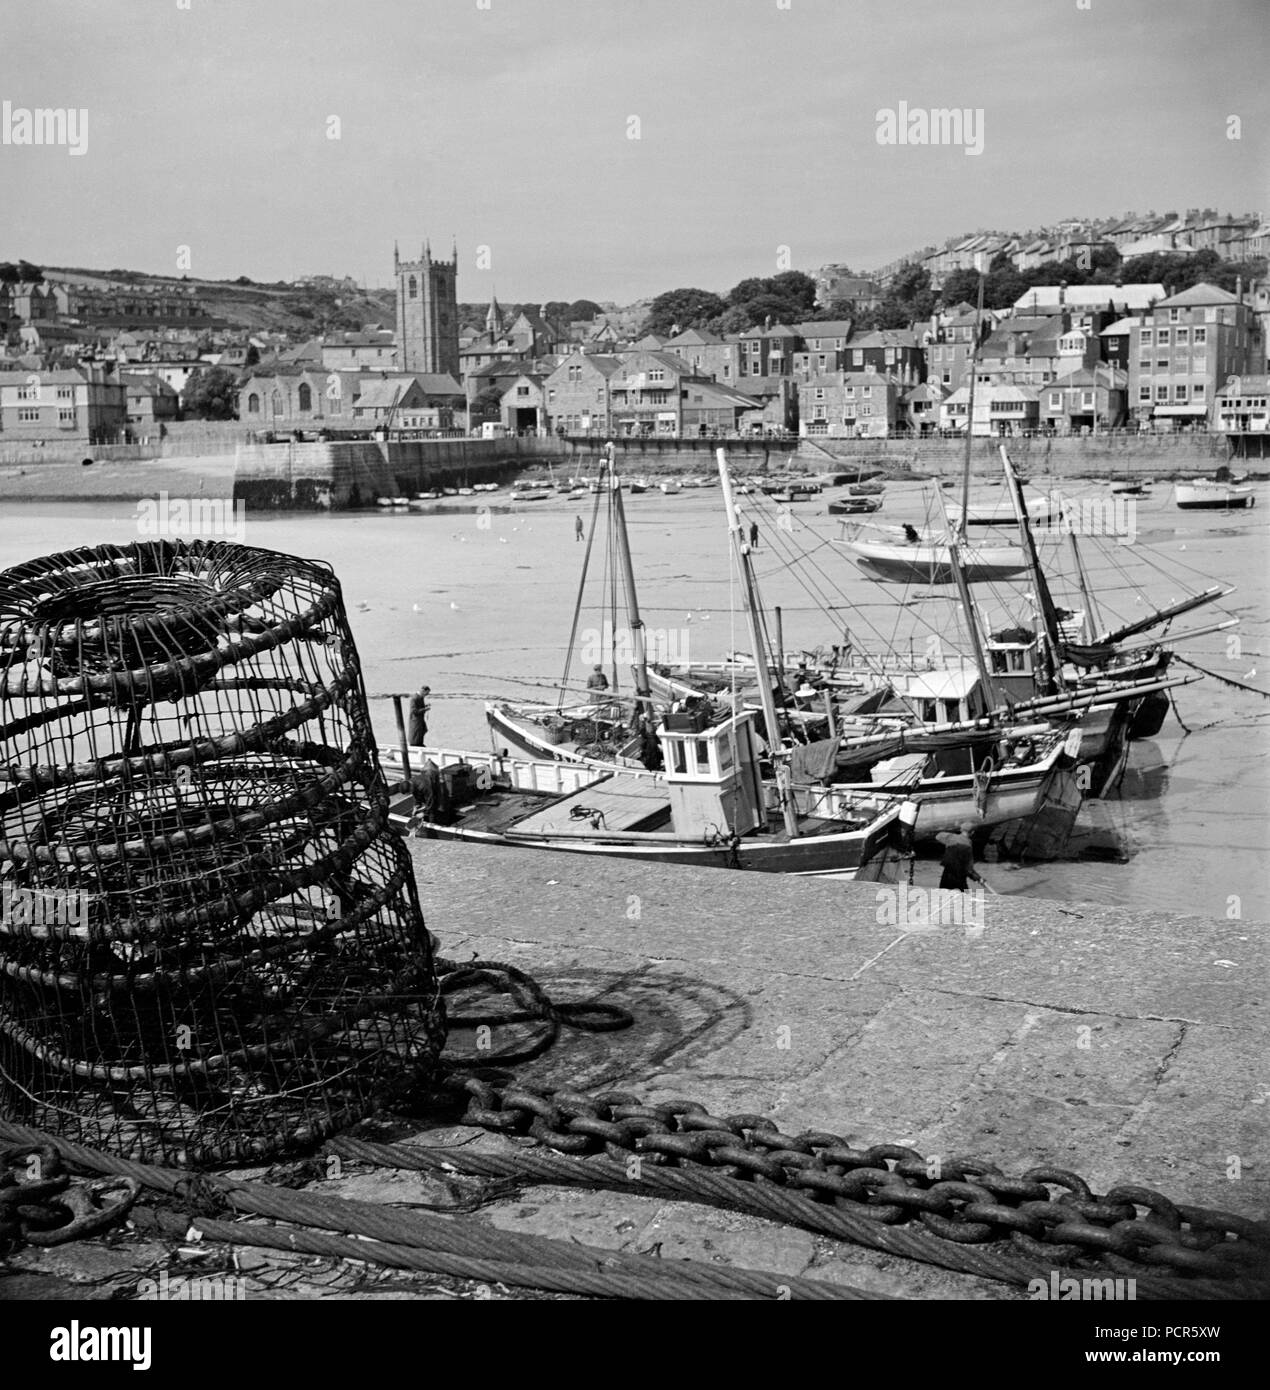 St Ives, Cornwall, 1950. A view looking across the harbour to the town from Smeaton's Pier, taken during the photographer's holiday to Cornwall. - Stock Image